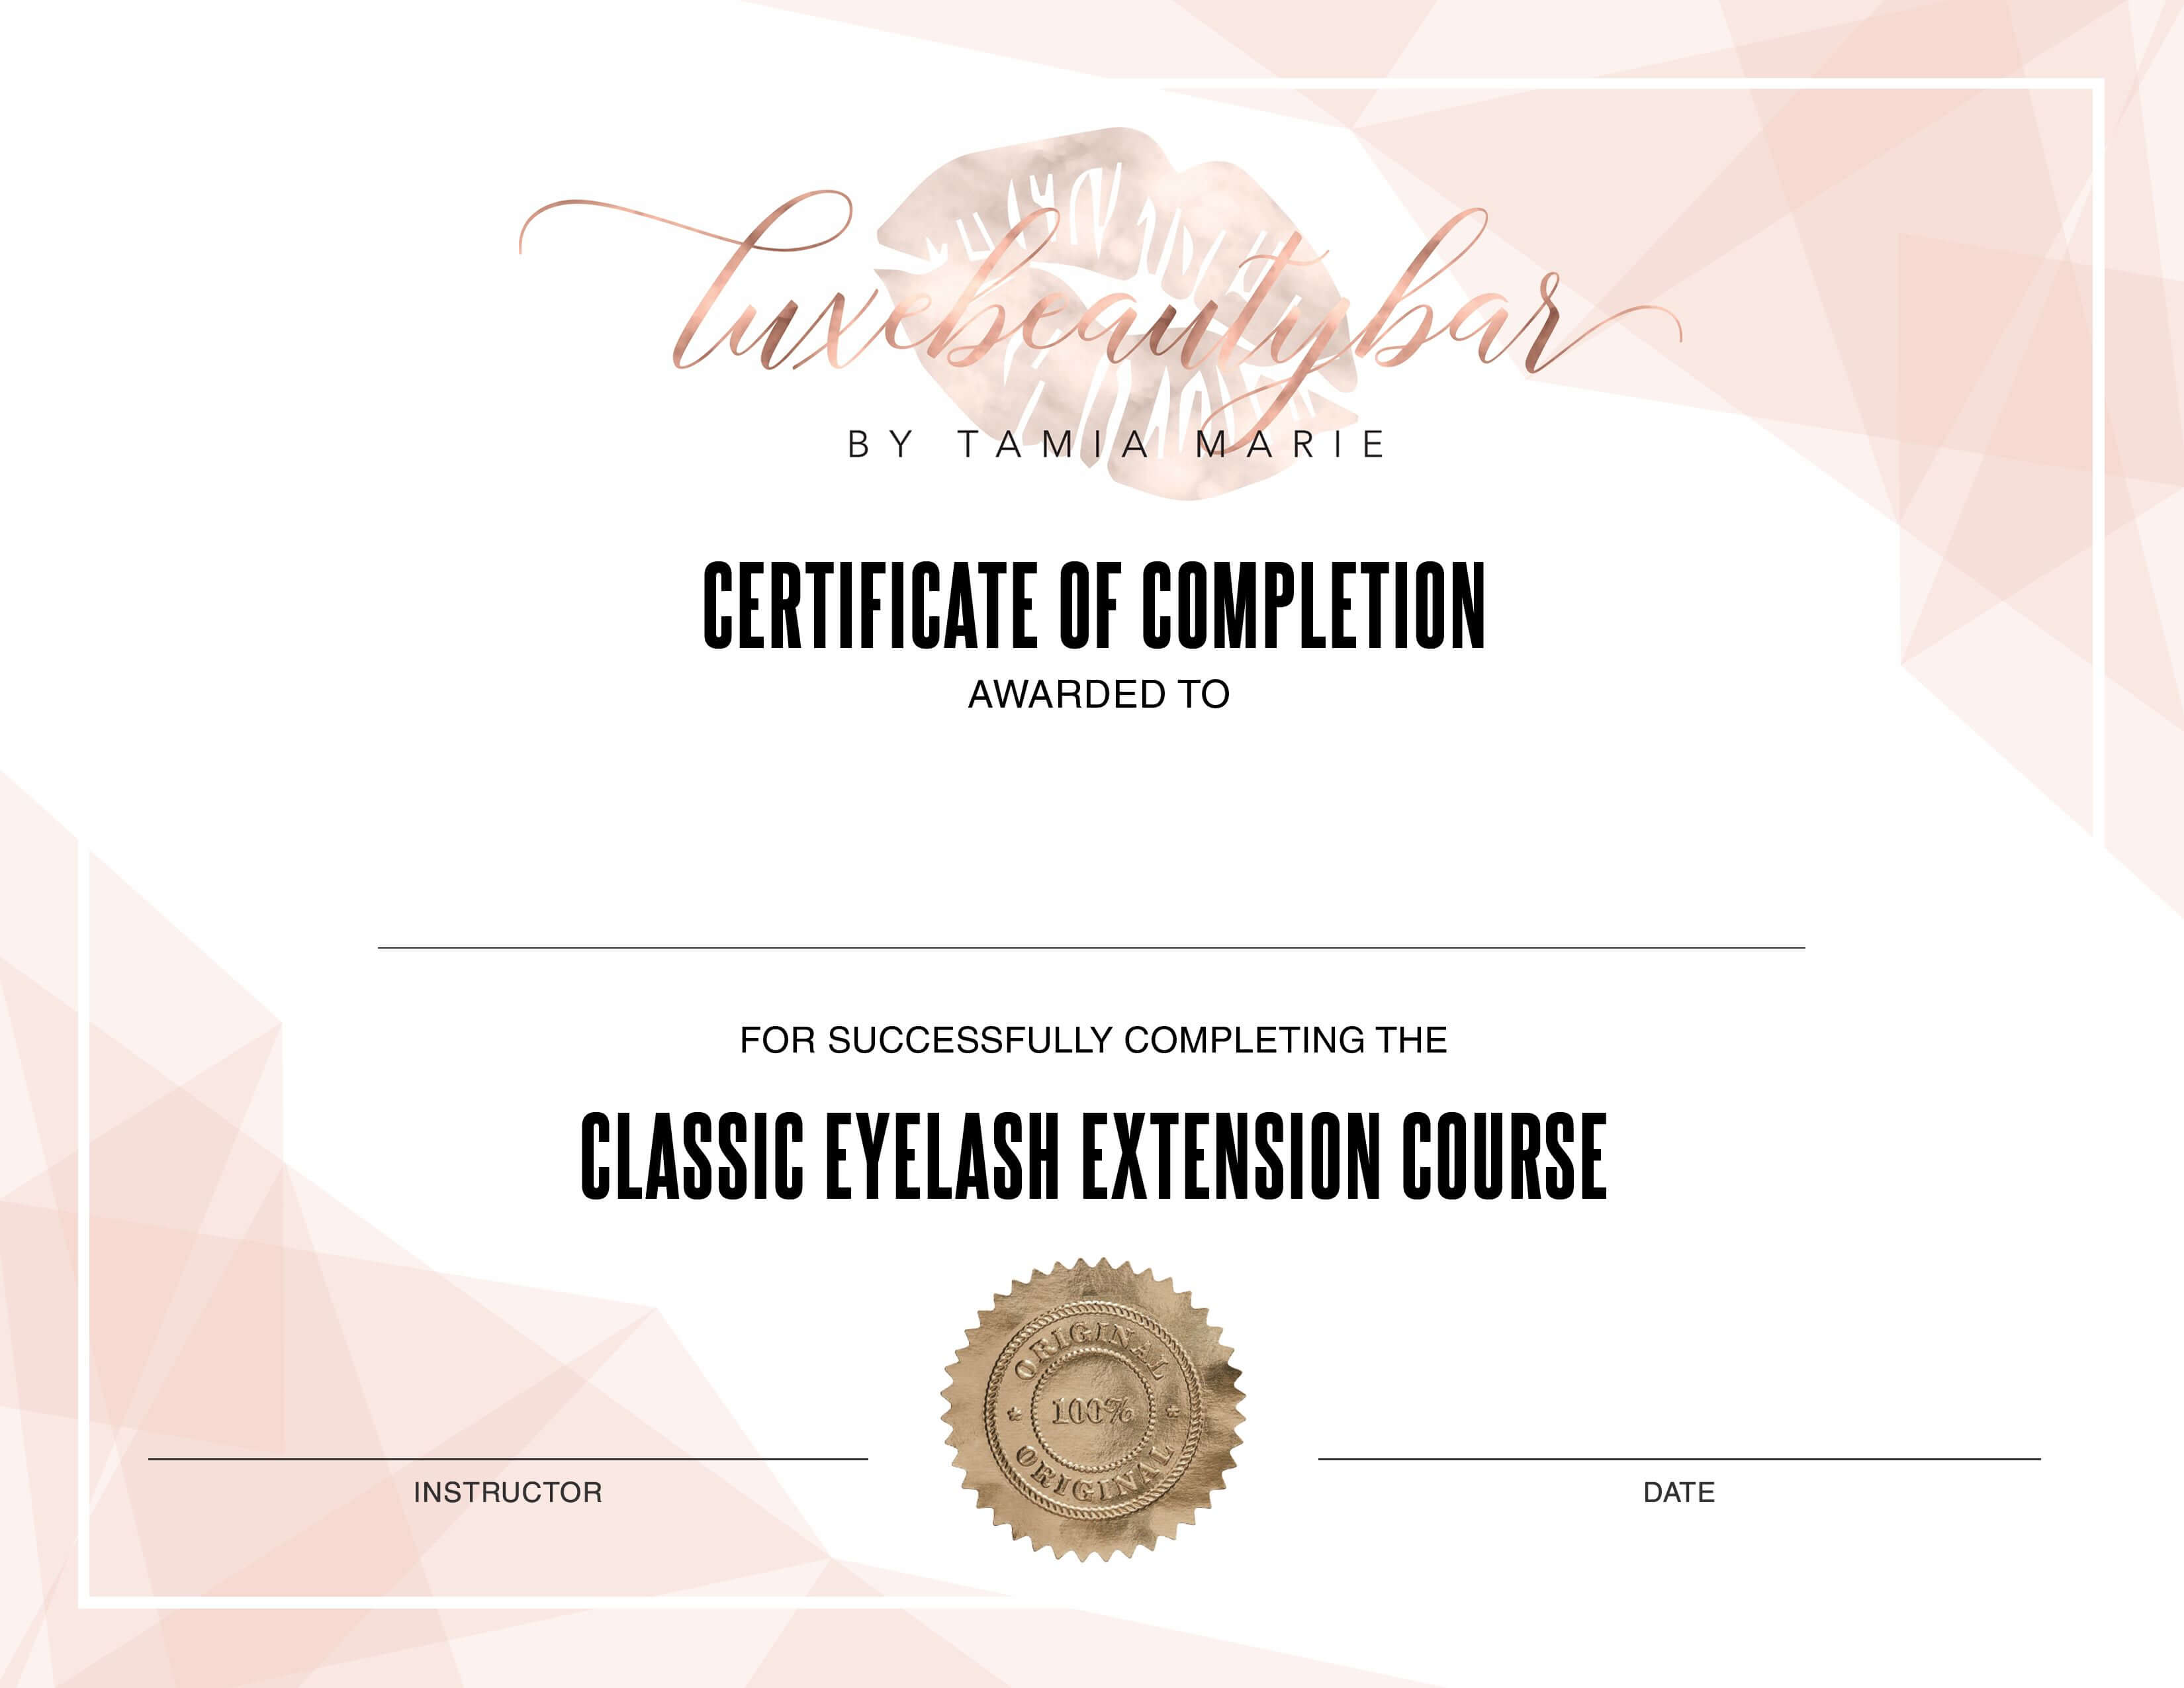 Eyelash Extension Certificate - Editable Template within Walking Certificate Templates